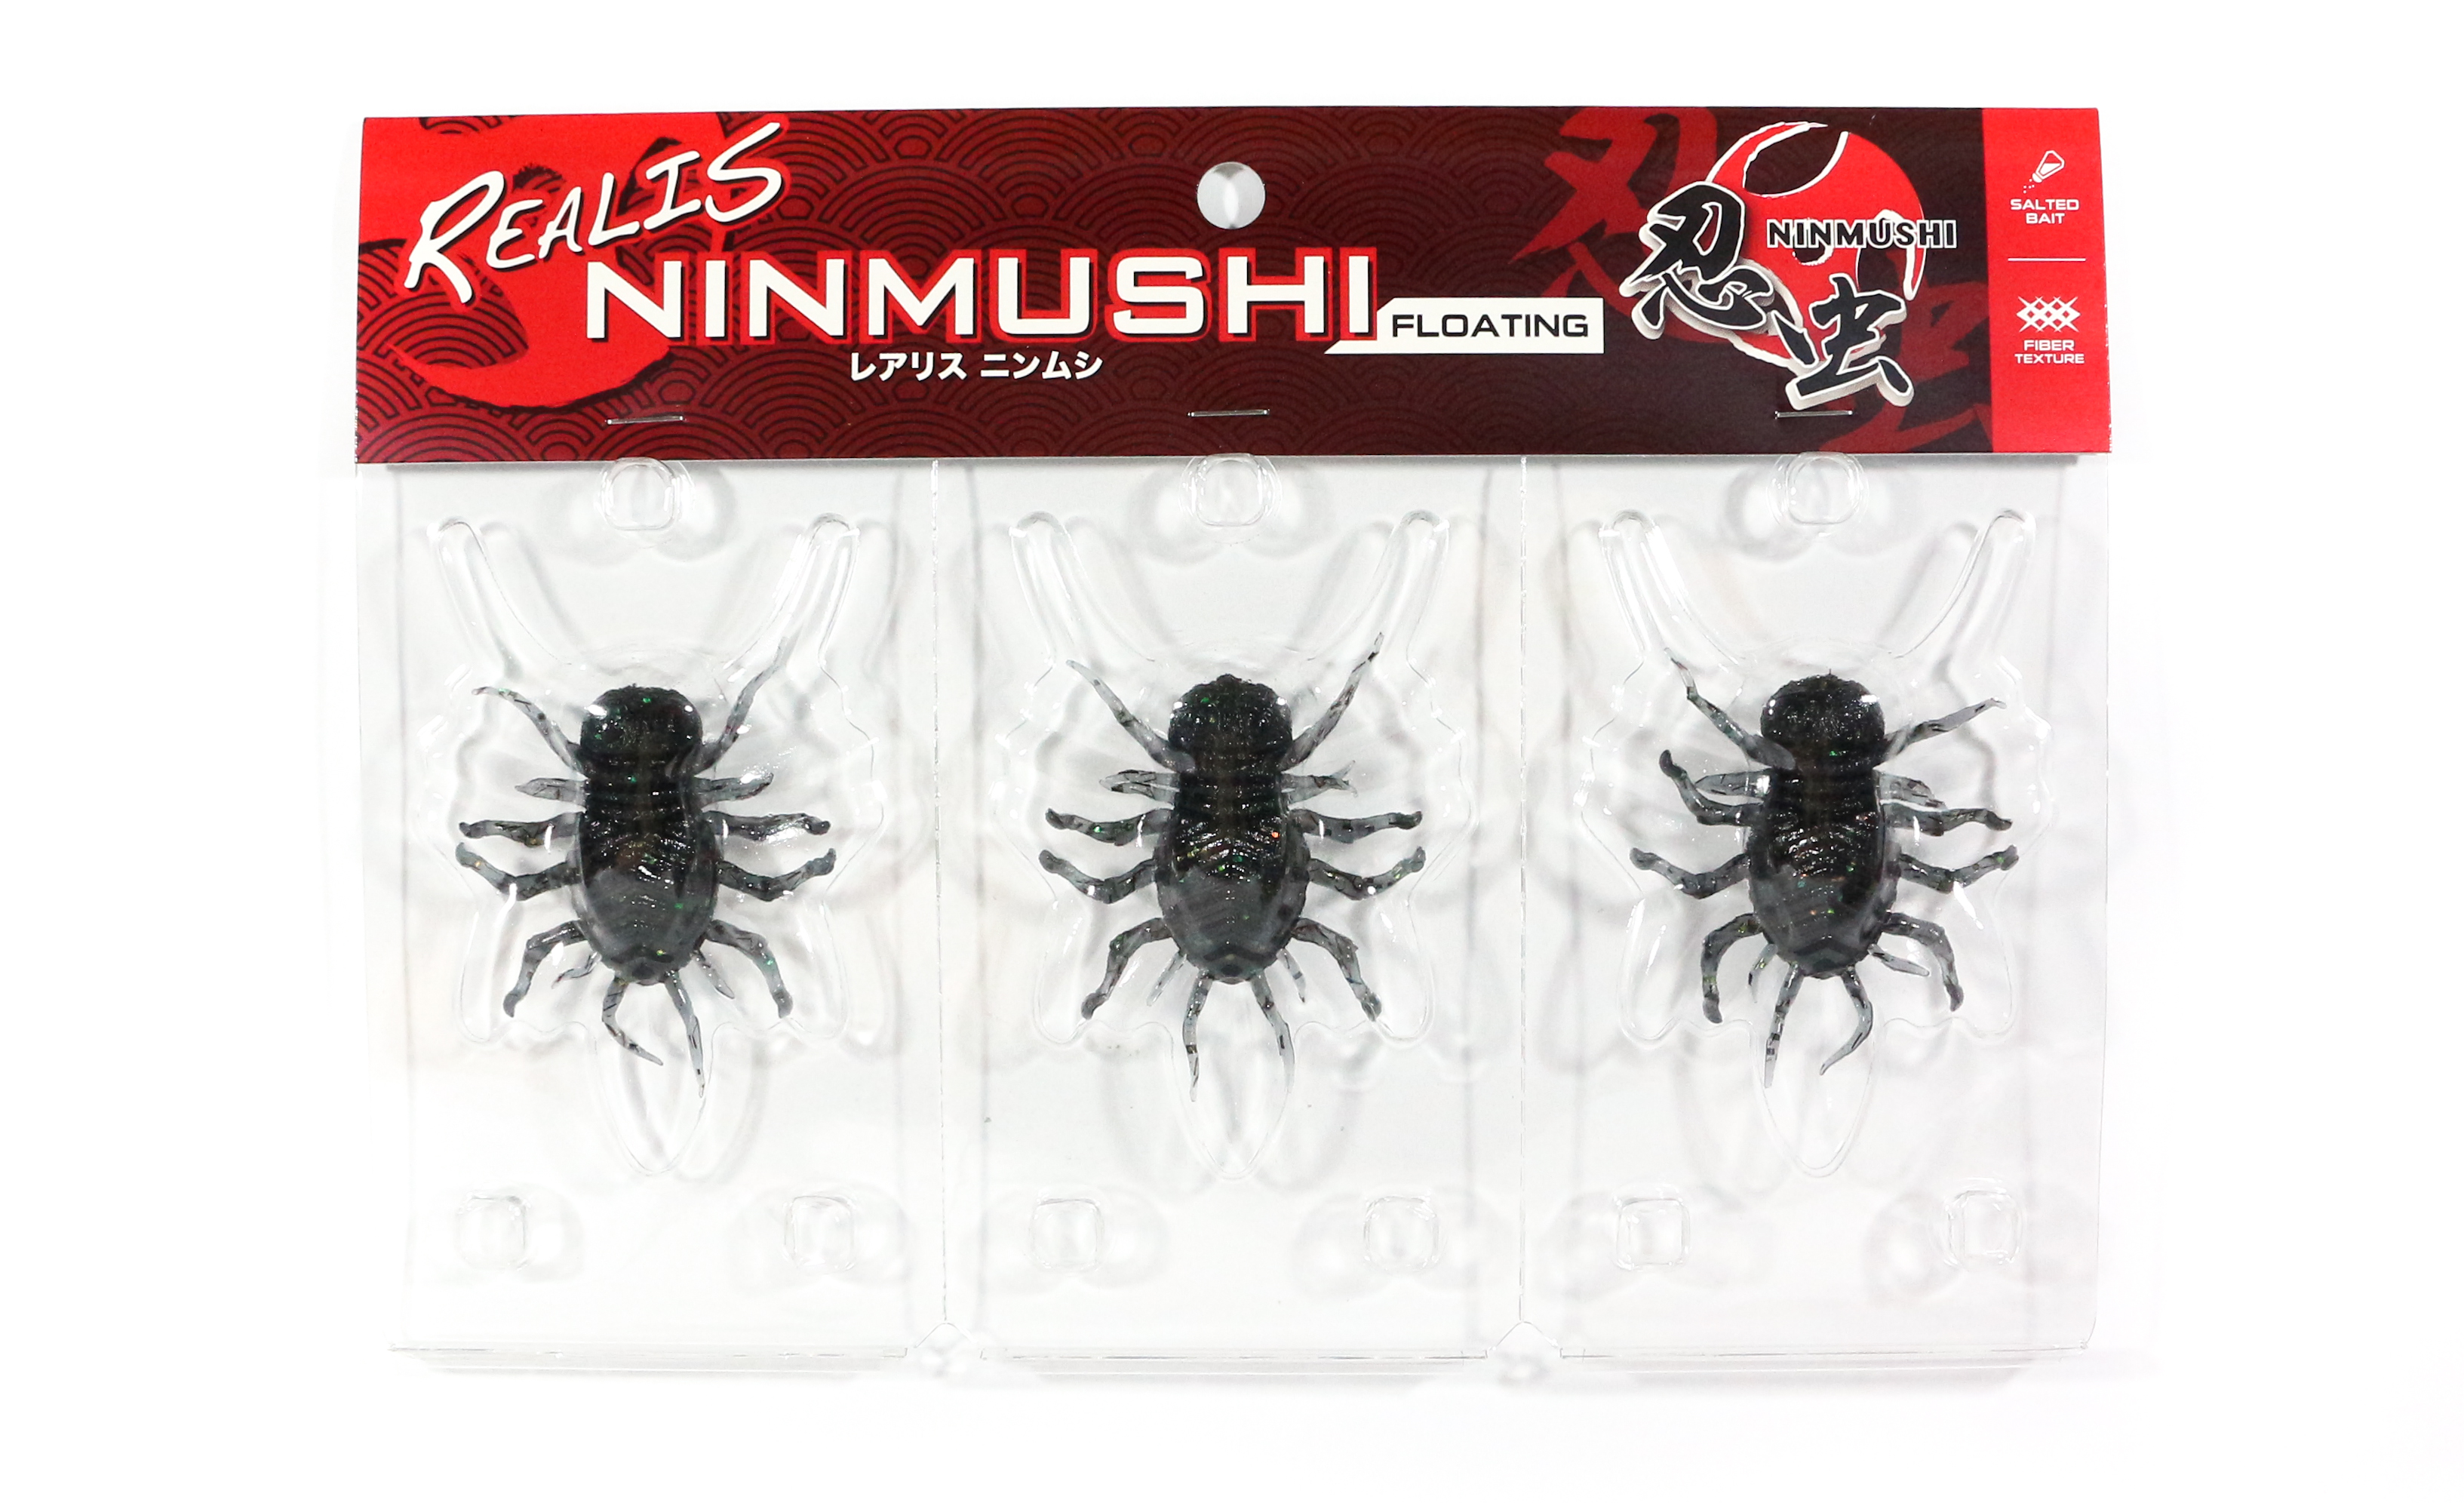 Duo Soft Lure Ninmushi Bug Floating Lure 3 piece pack F612 (1218)